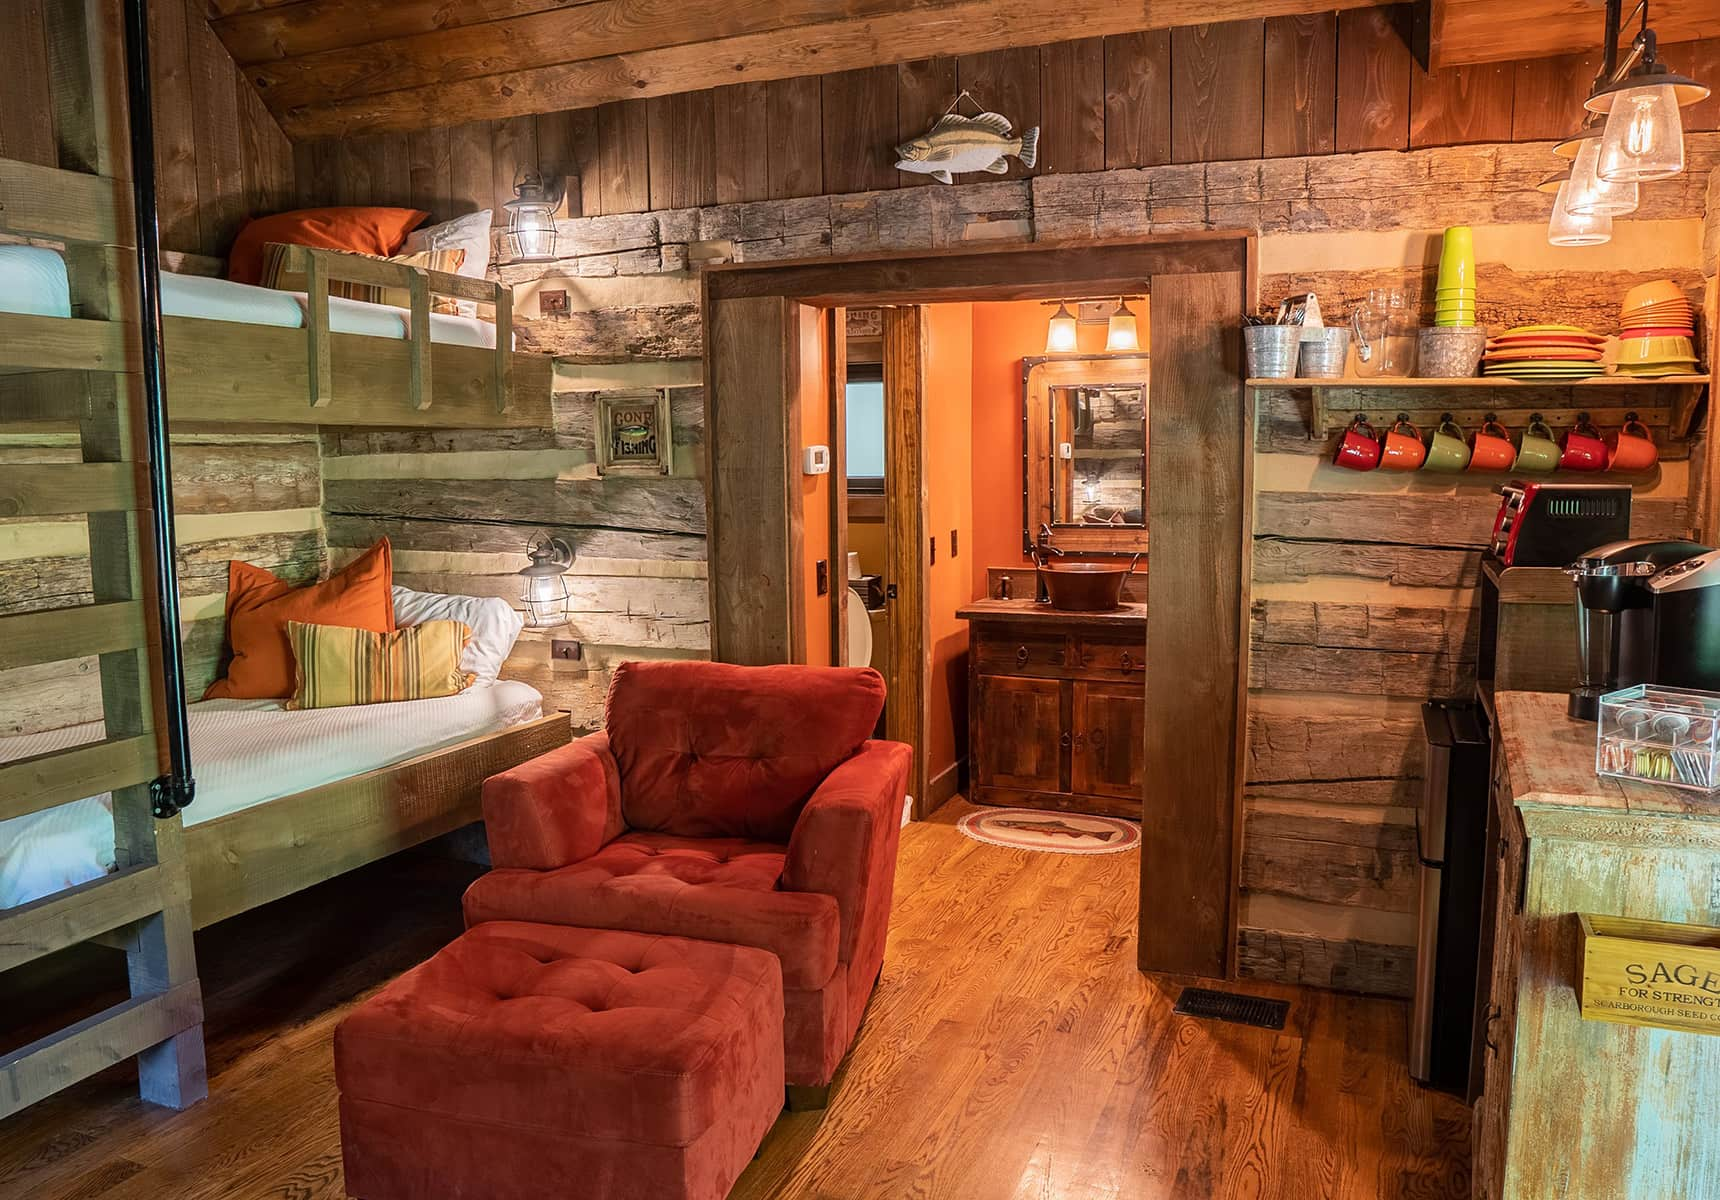 Fishing Creek Cabin interior with bunk beds and a doorway to the bathroom